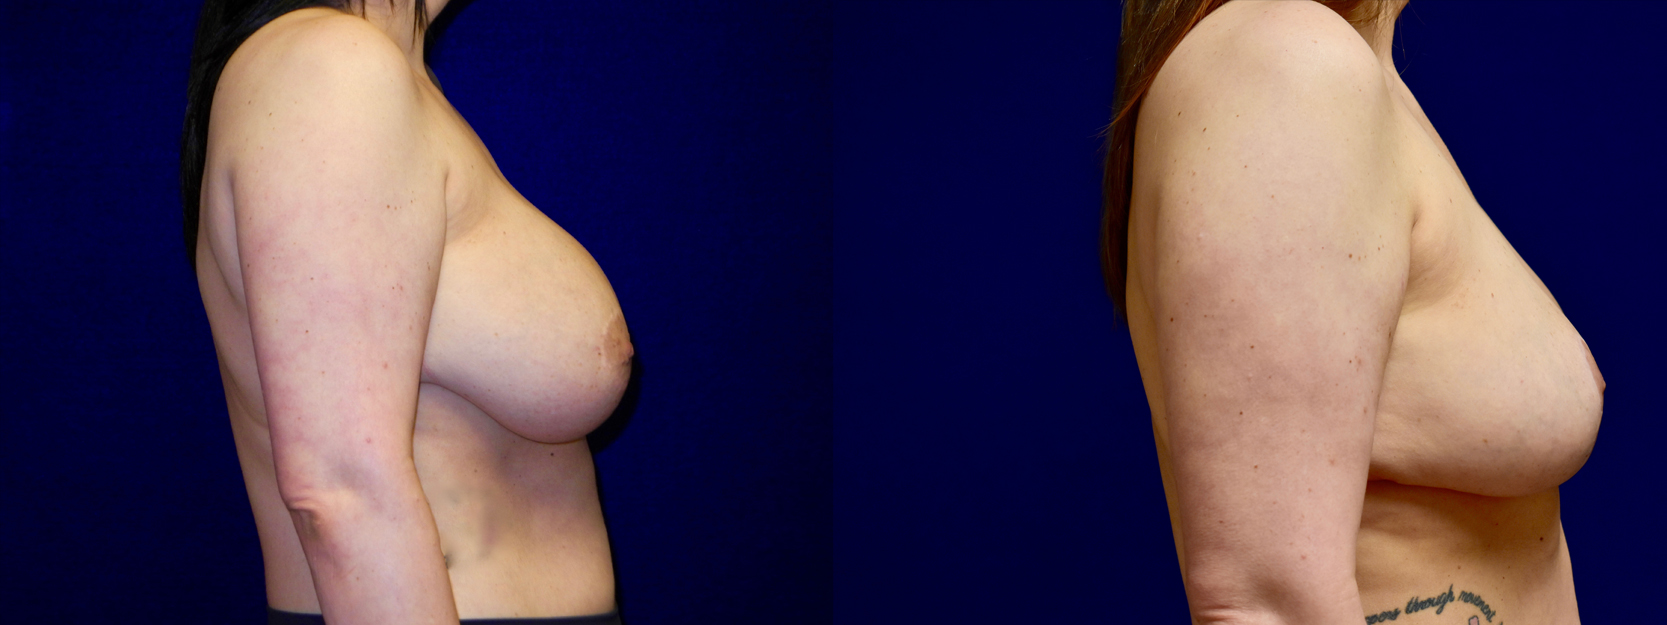 Right Profile View - Breast Implant Removal with Reduction and Lift